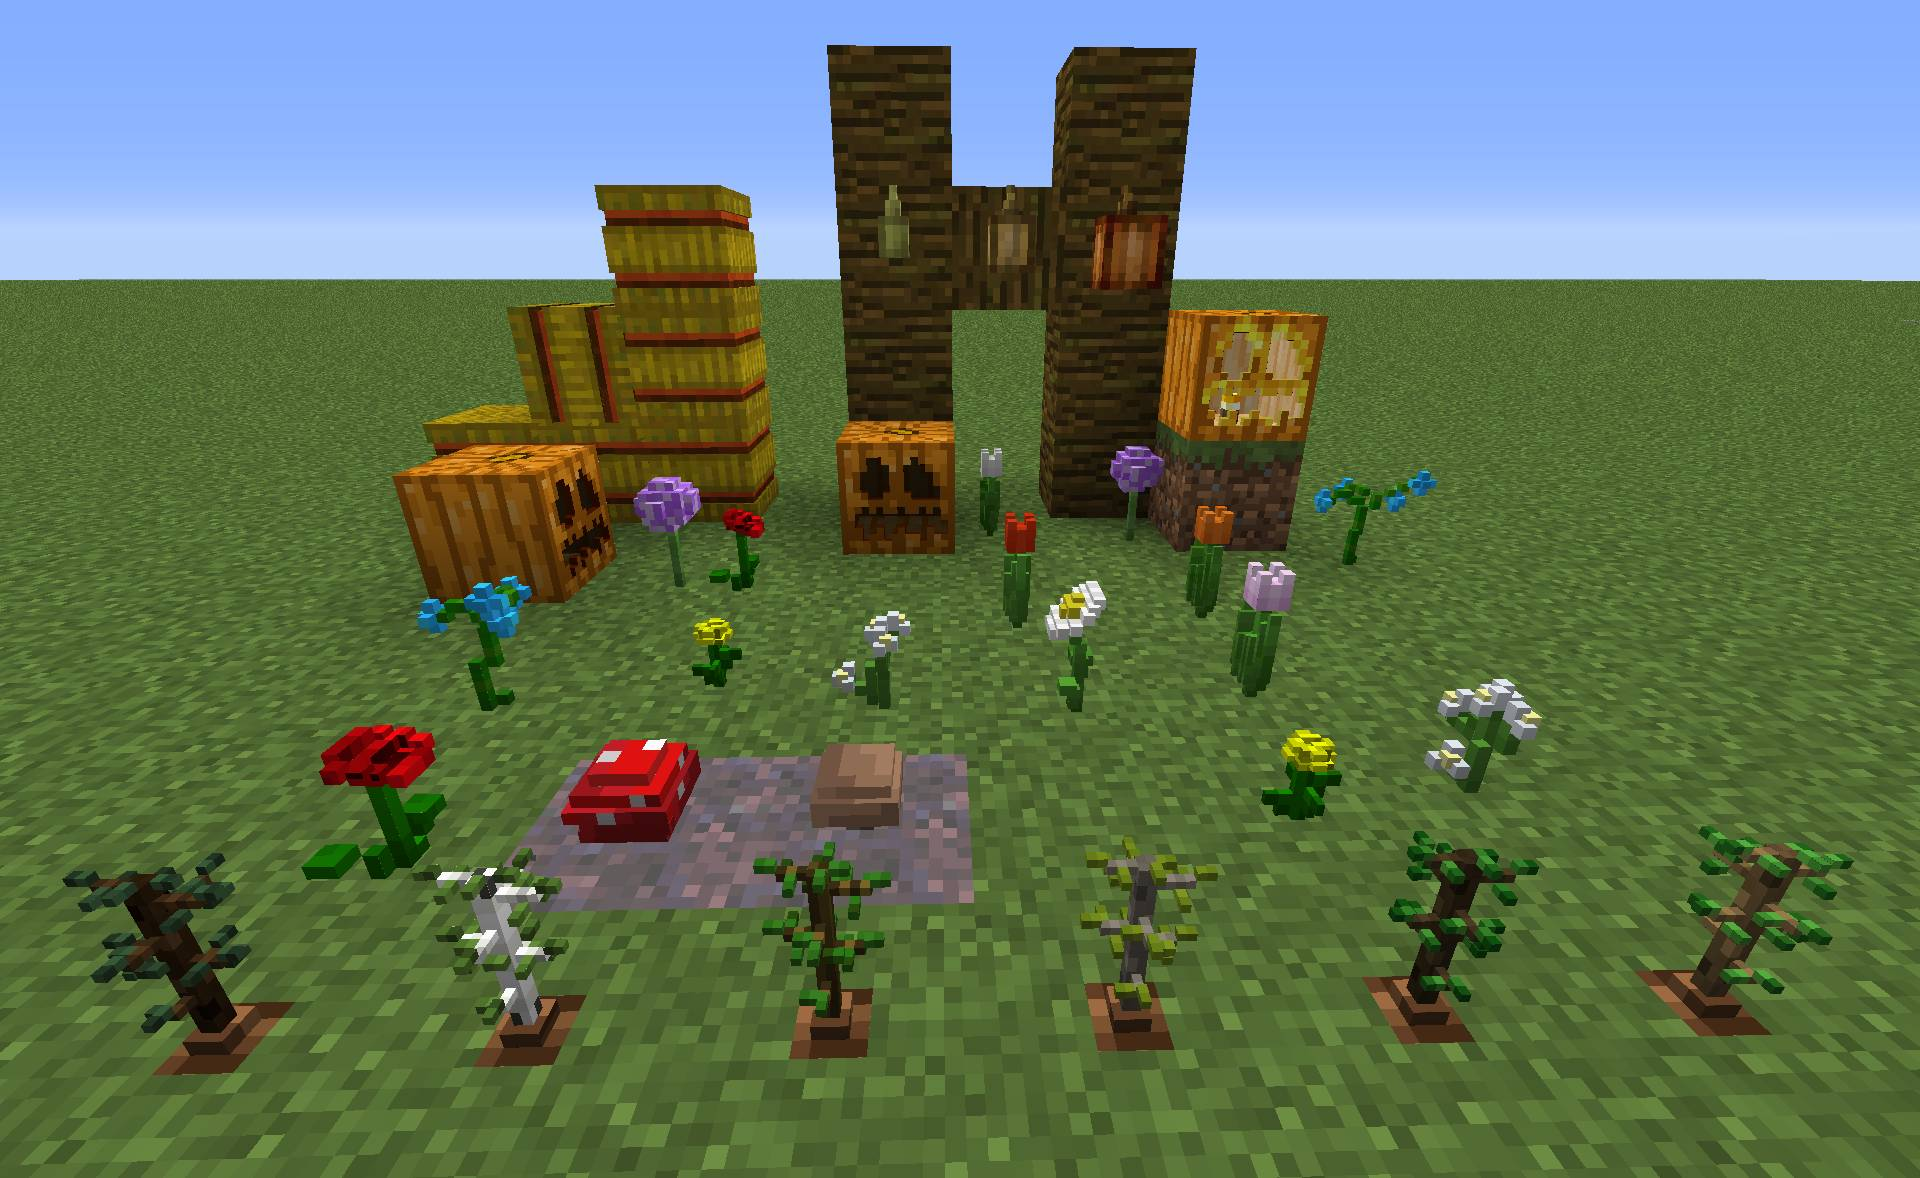 Minecraft Texture Minecraft : 3D Models 1.8 (1.8.8) - photo#40